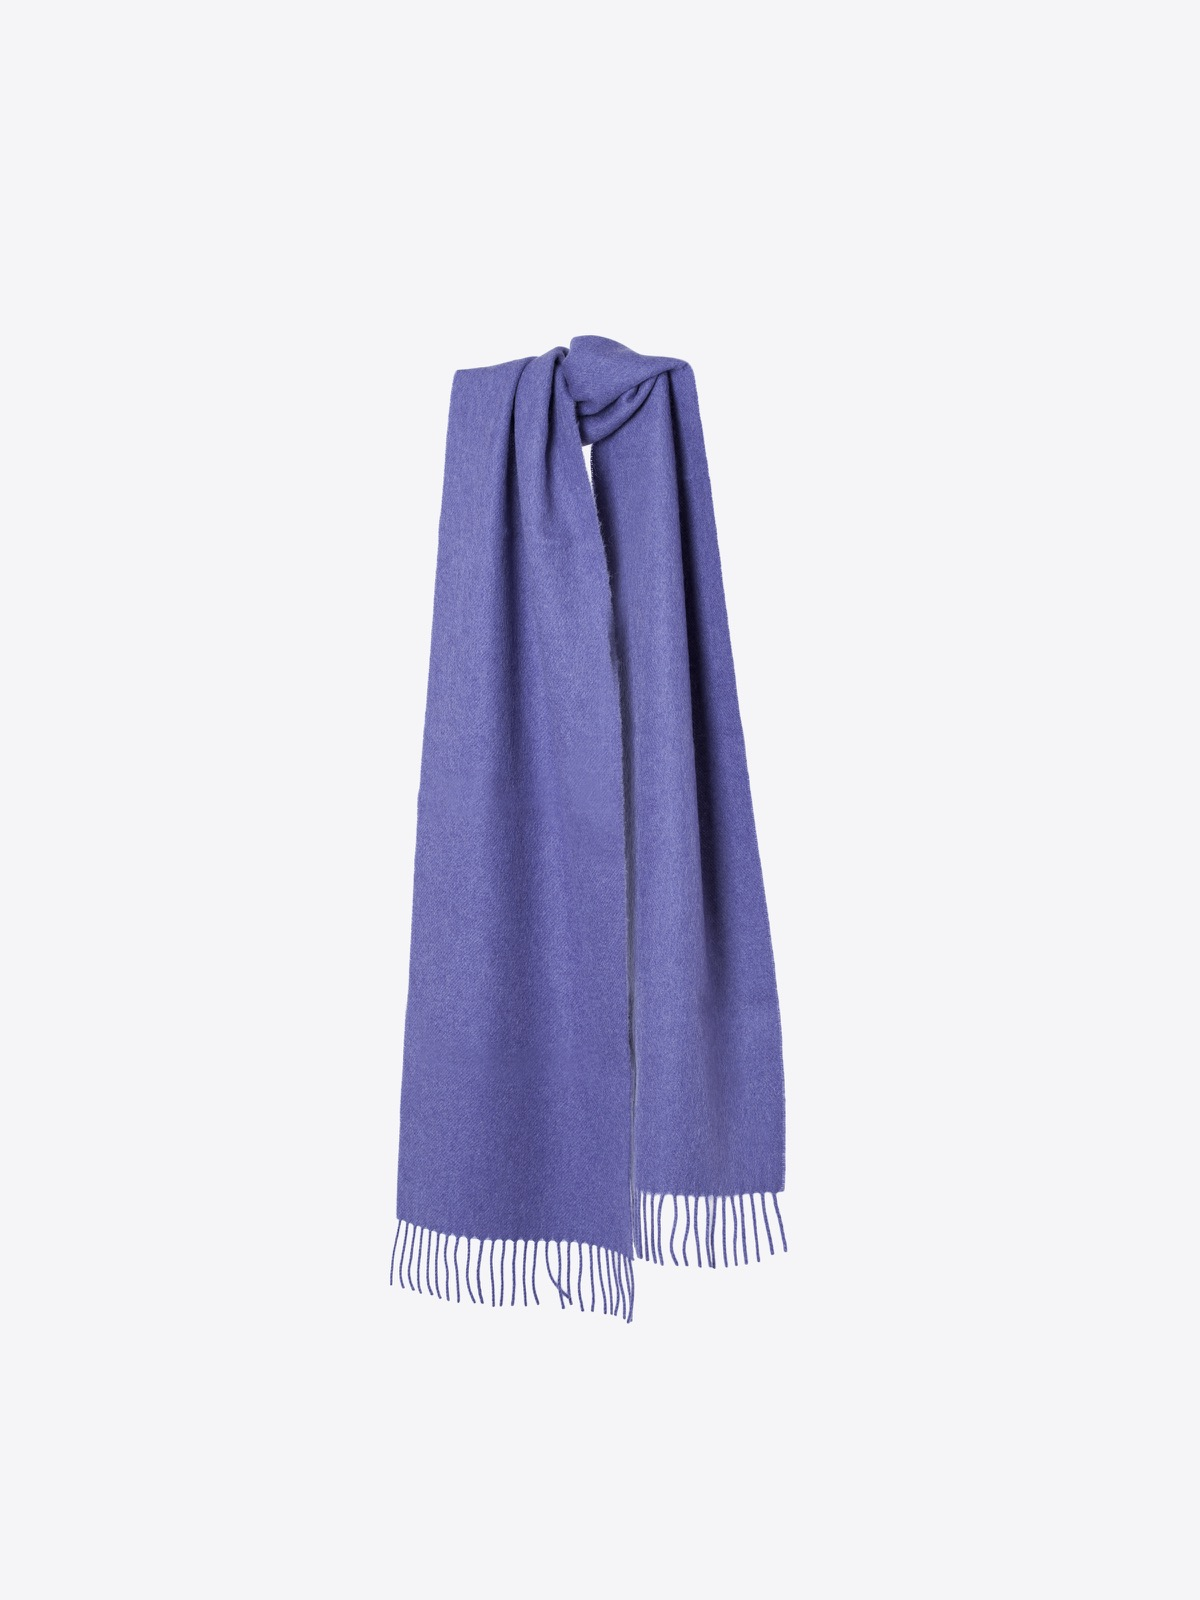 airbag craftworks scott | purple cashmere scarf